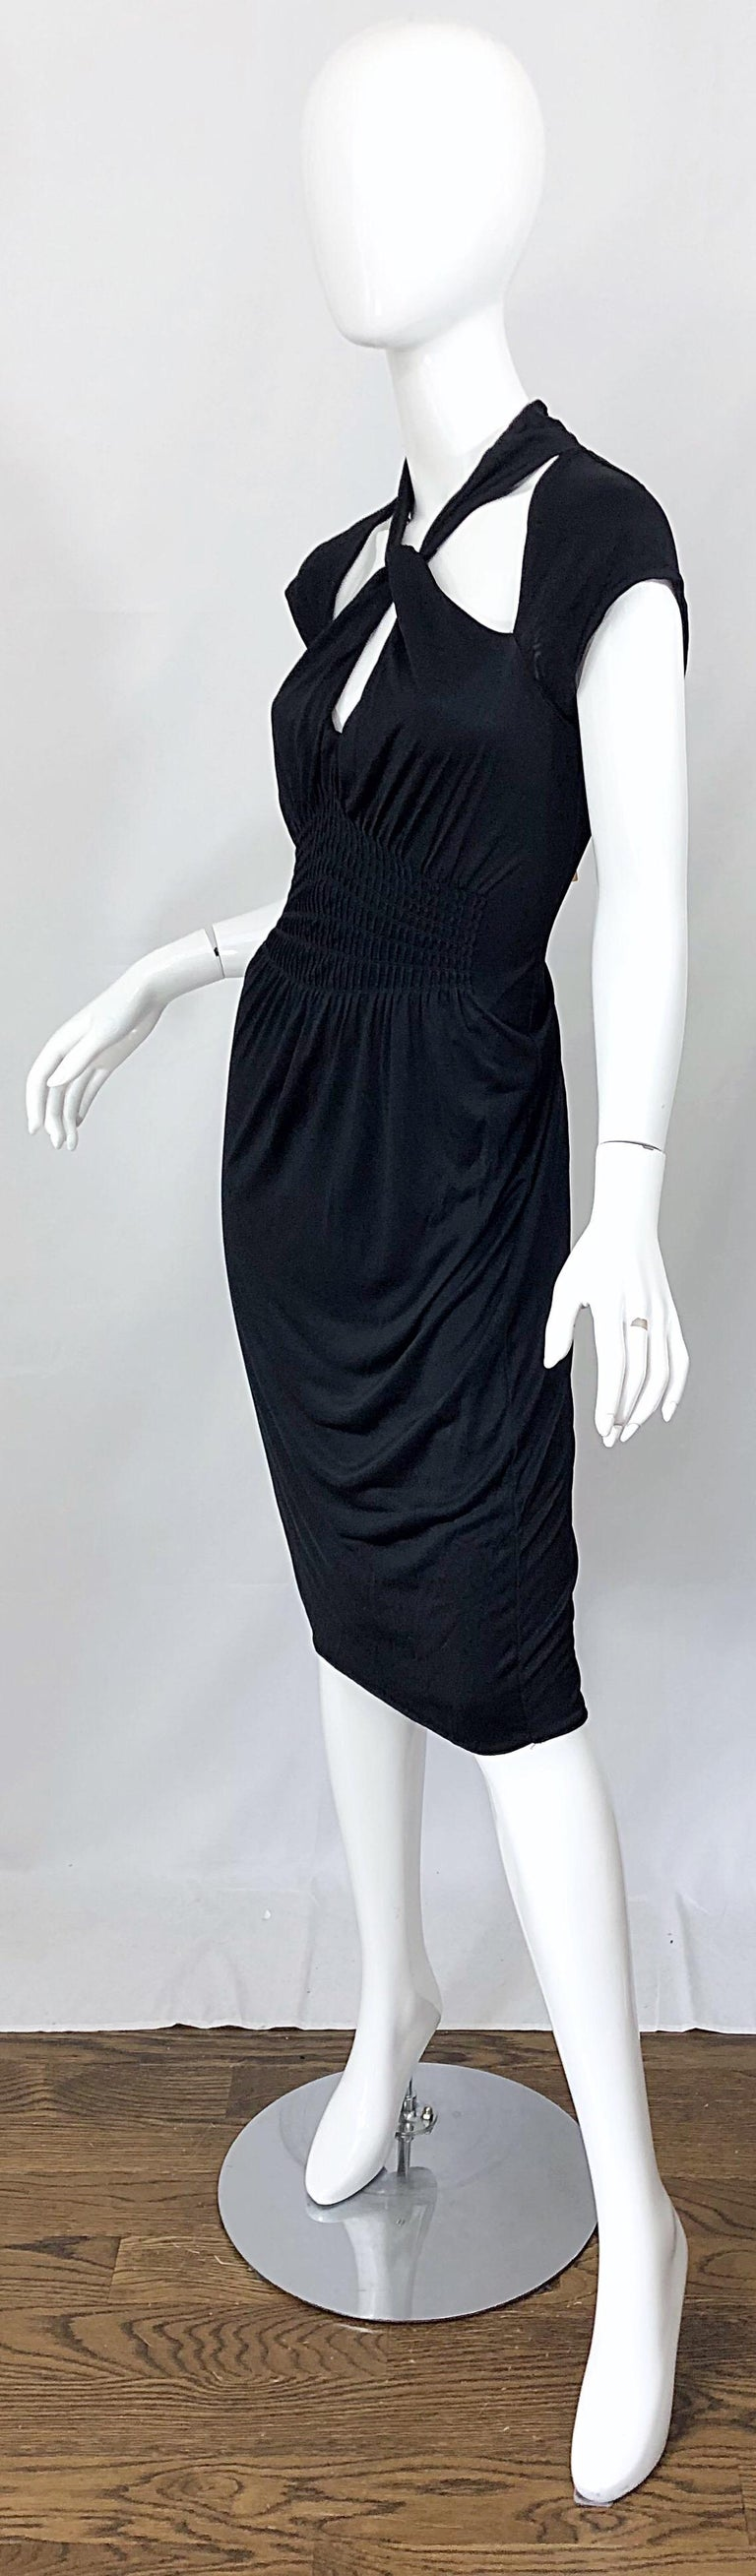 Gucci Tom Ford Fall 2003 Runway Black Cut Out Backless Stretch Jersey Dress  For Sale 5